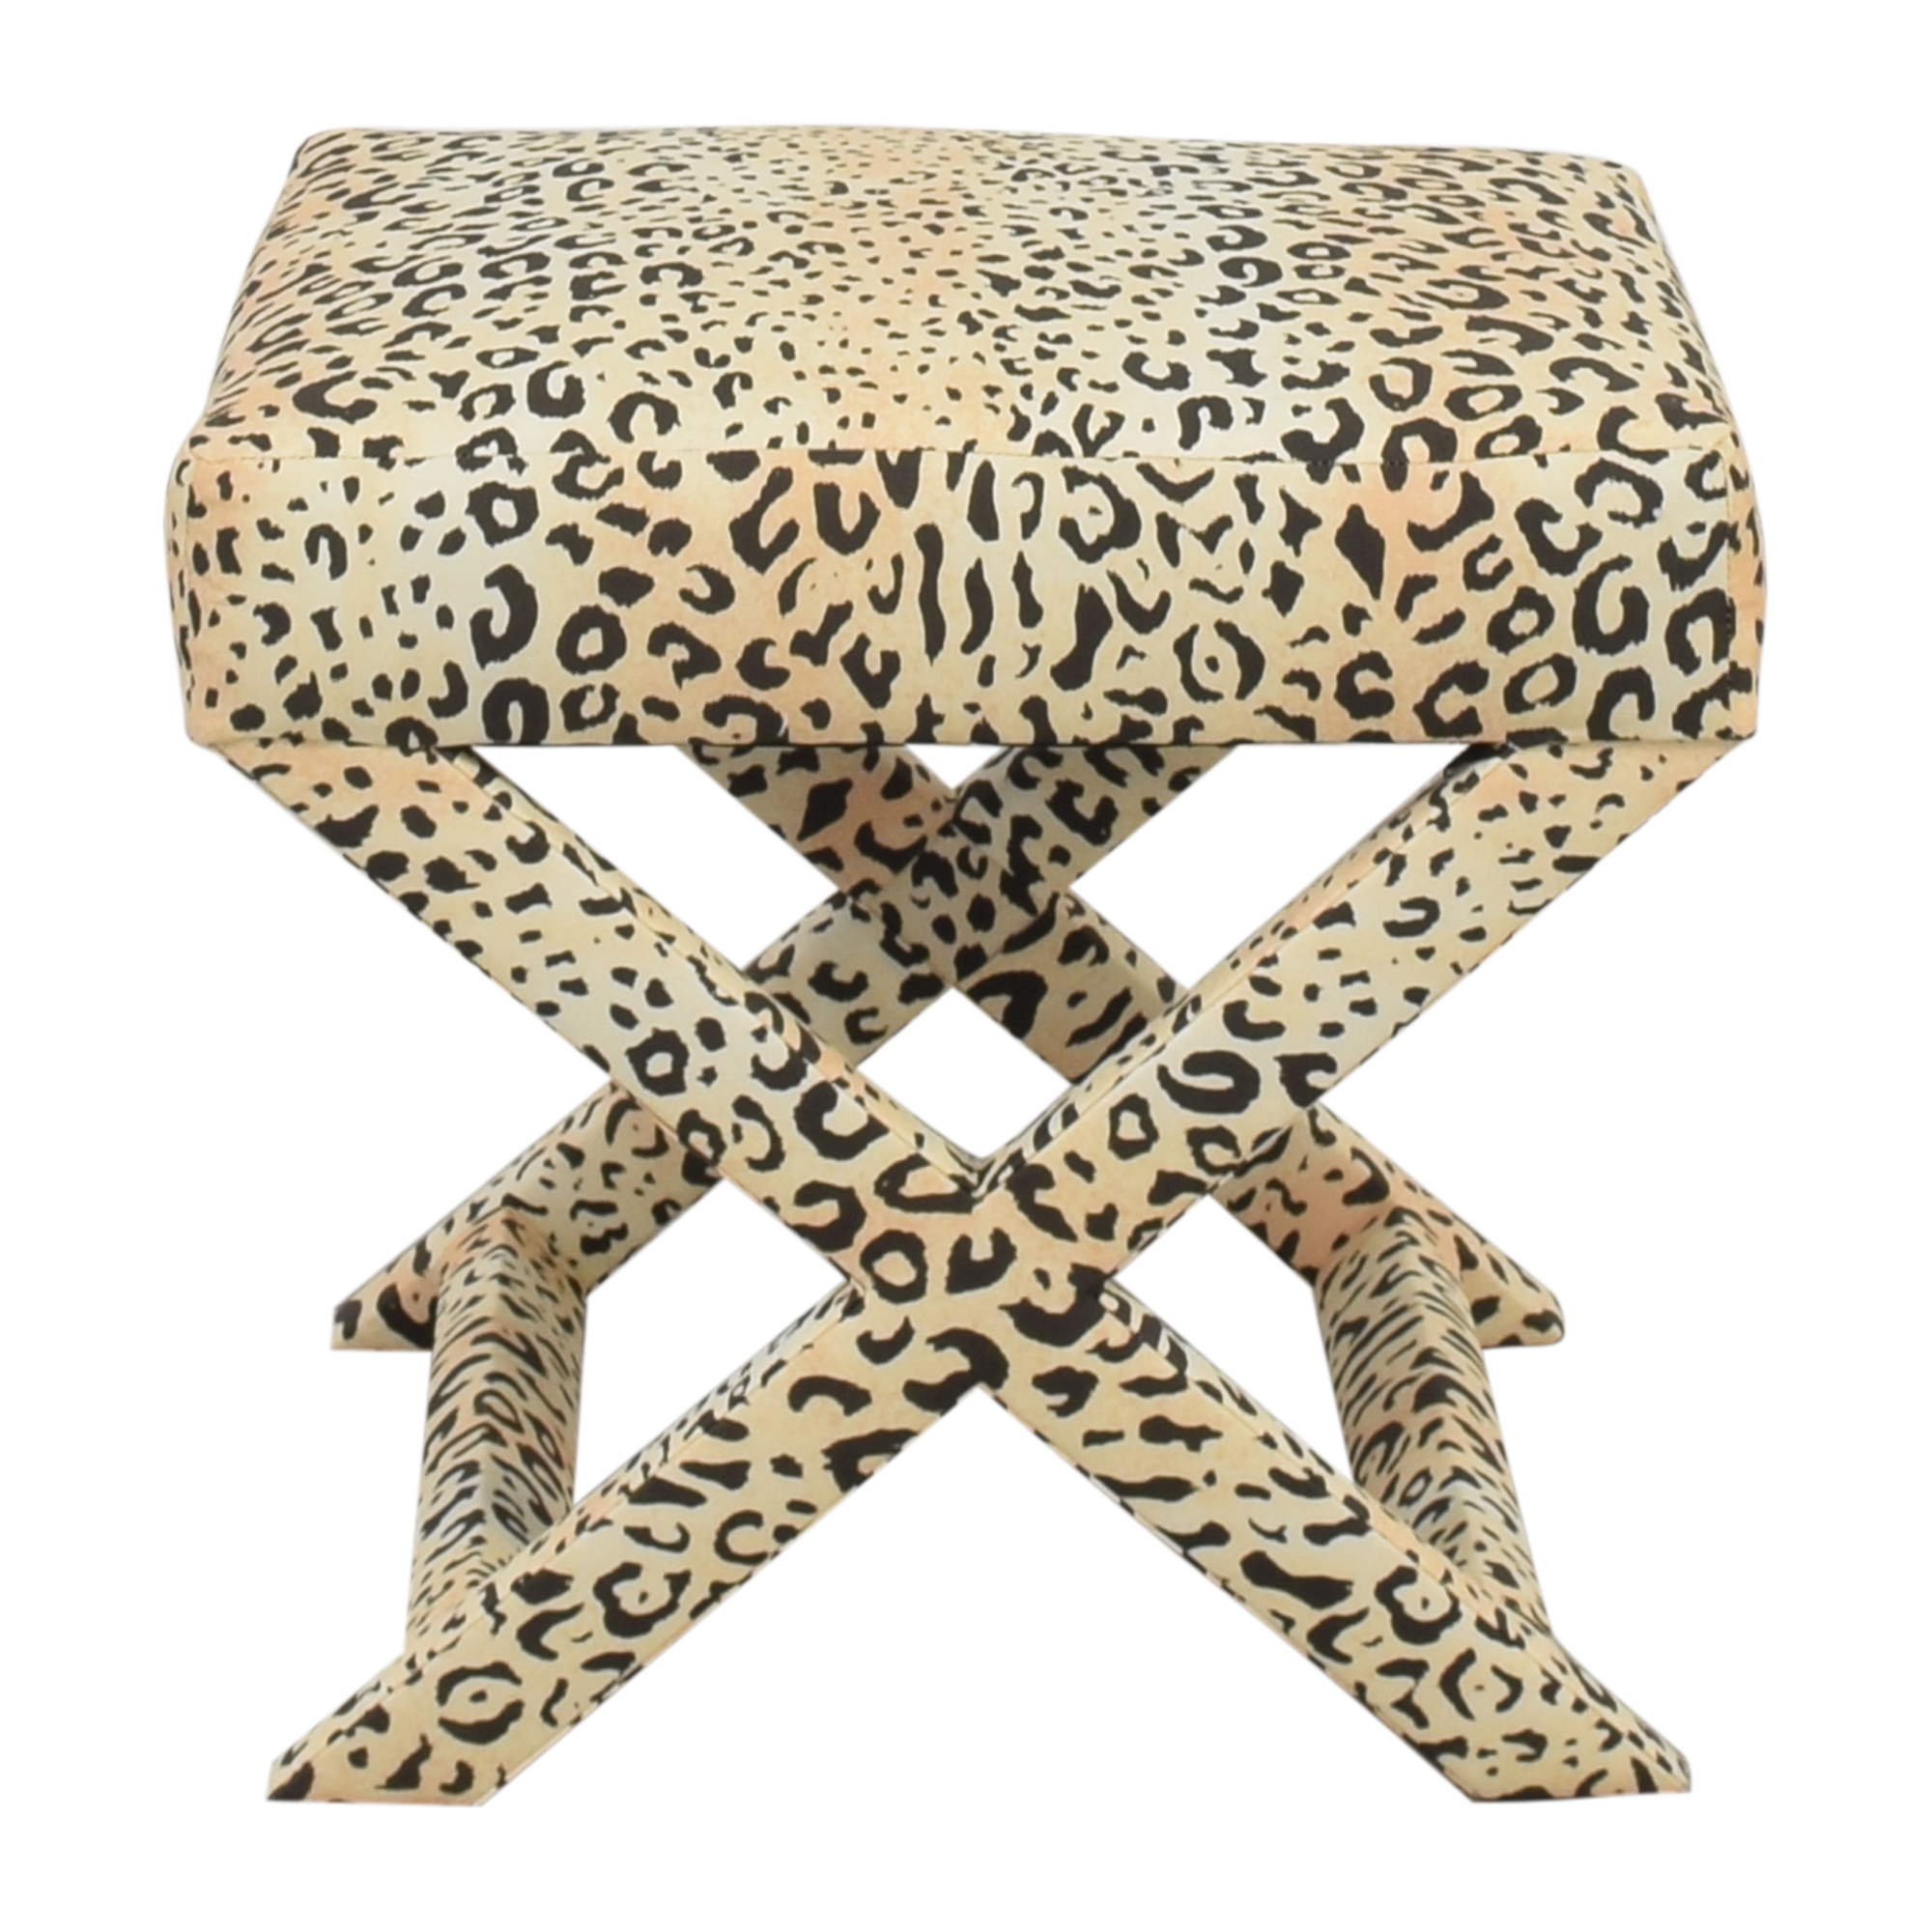 The Inside The Inside X-Bench in Leopard dimensions